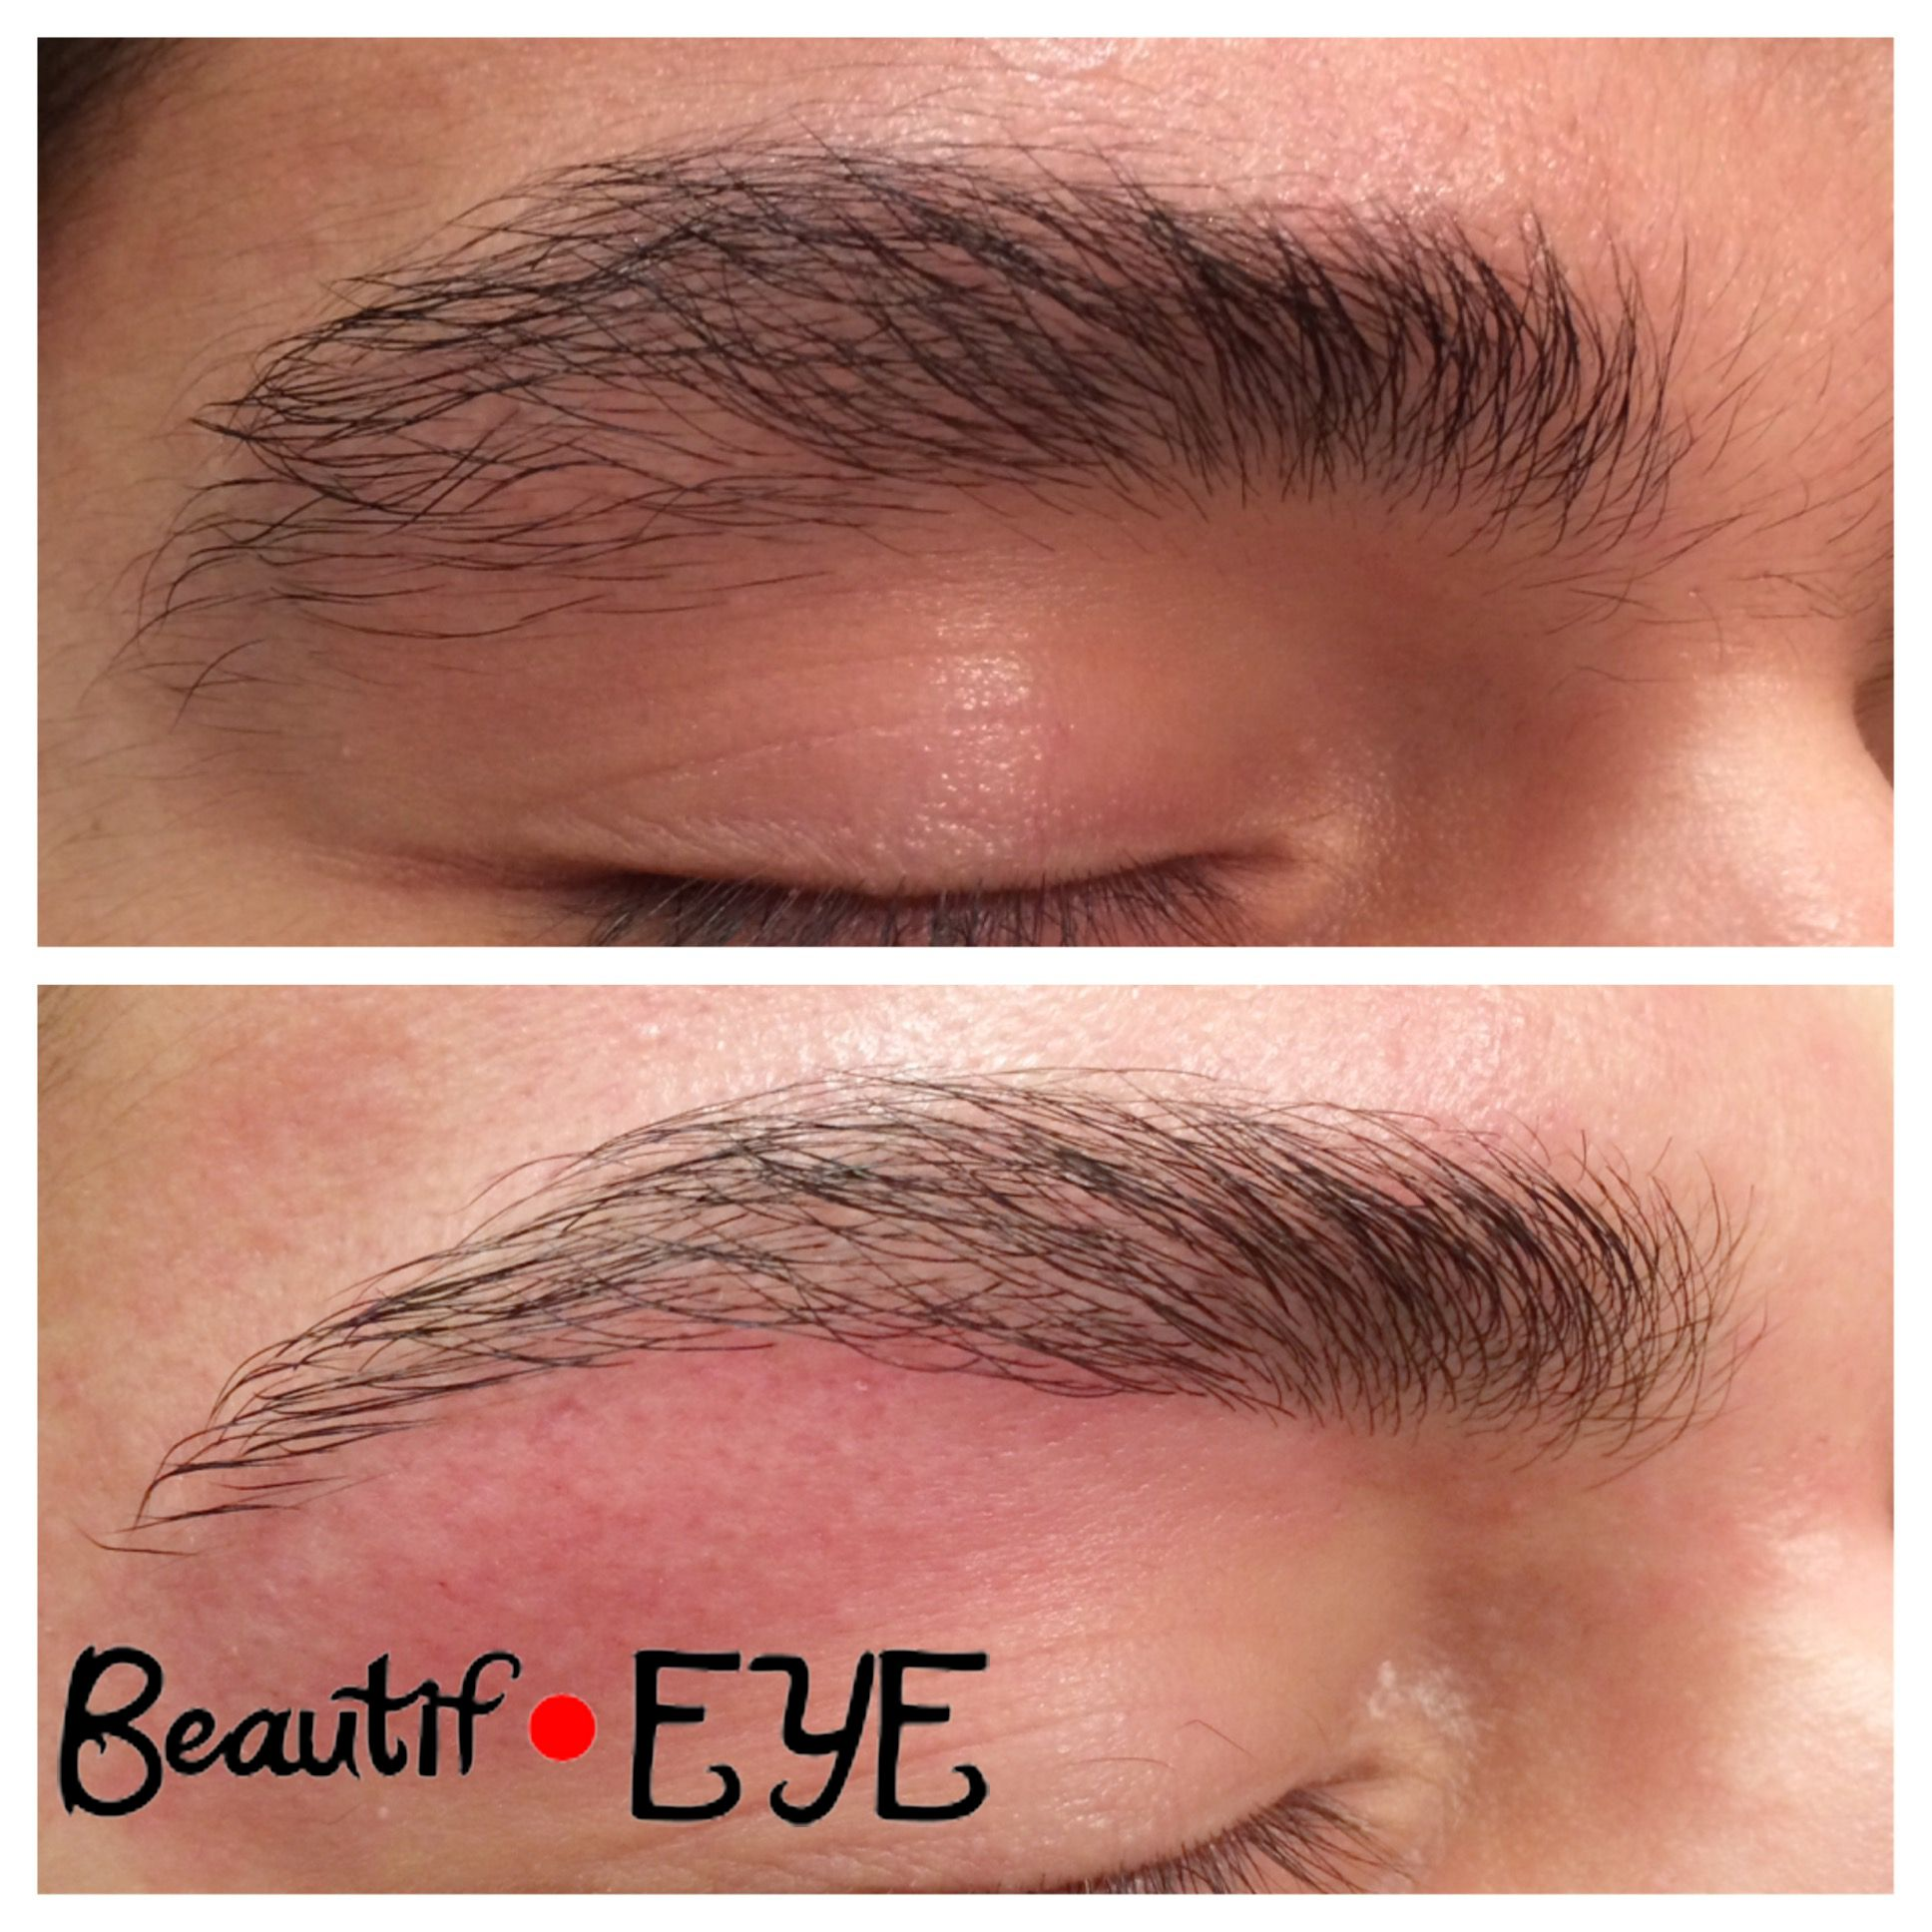 Beautif Eye Eyebrow Threading Photos Before And After Eyebrow